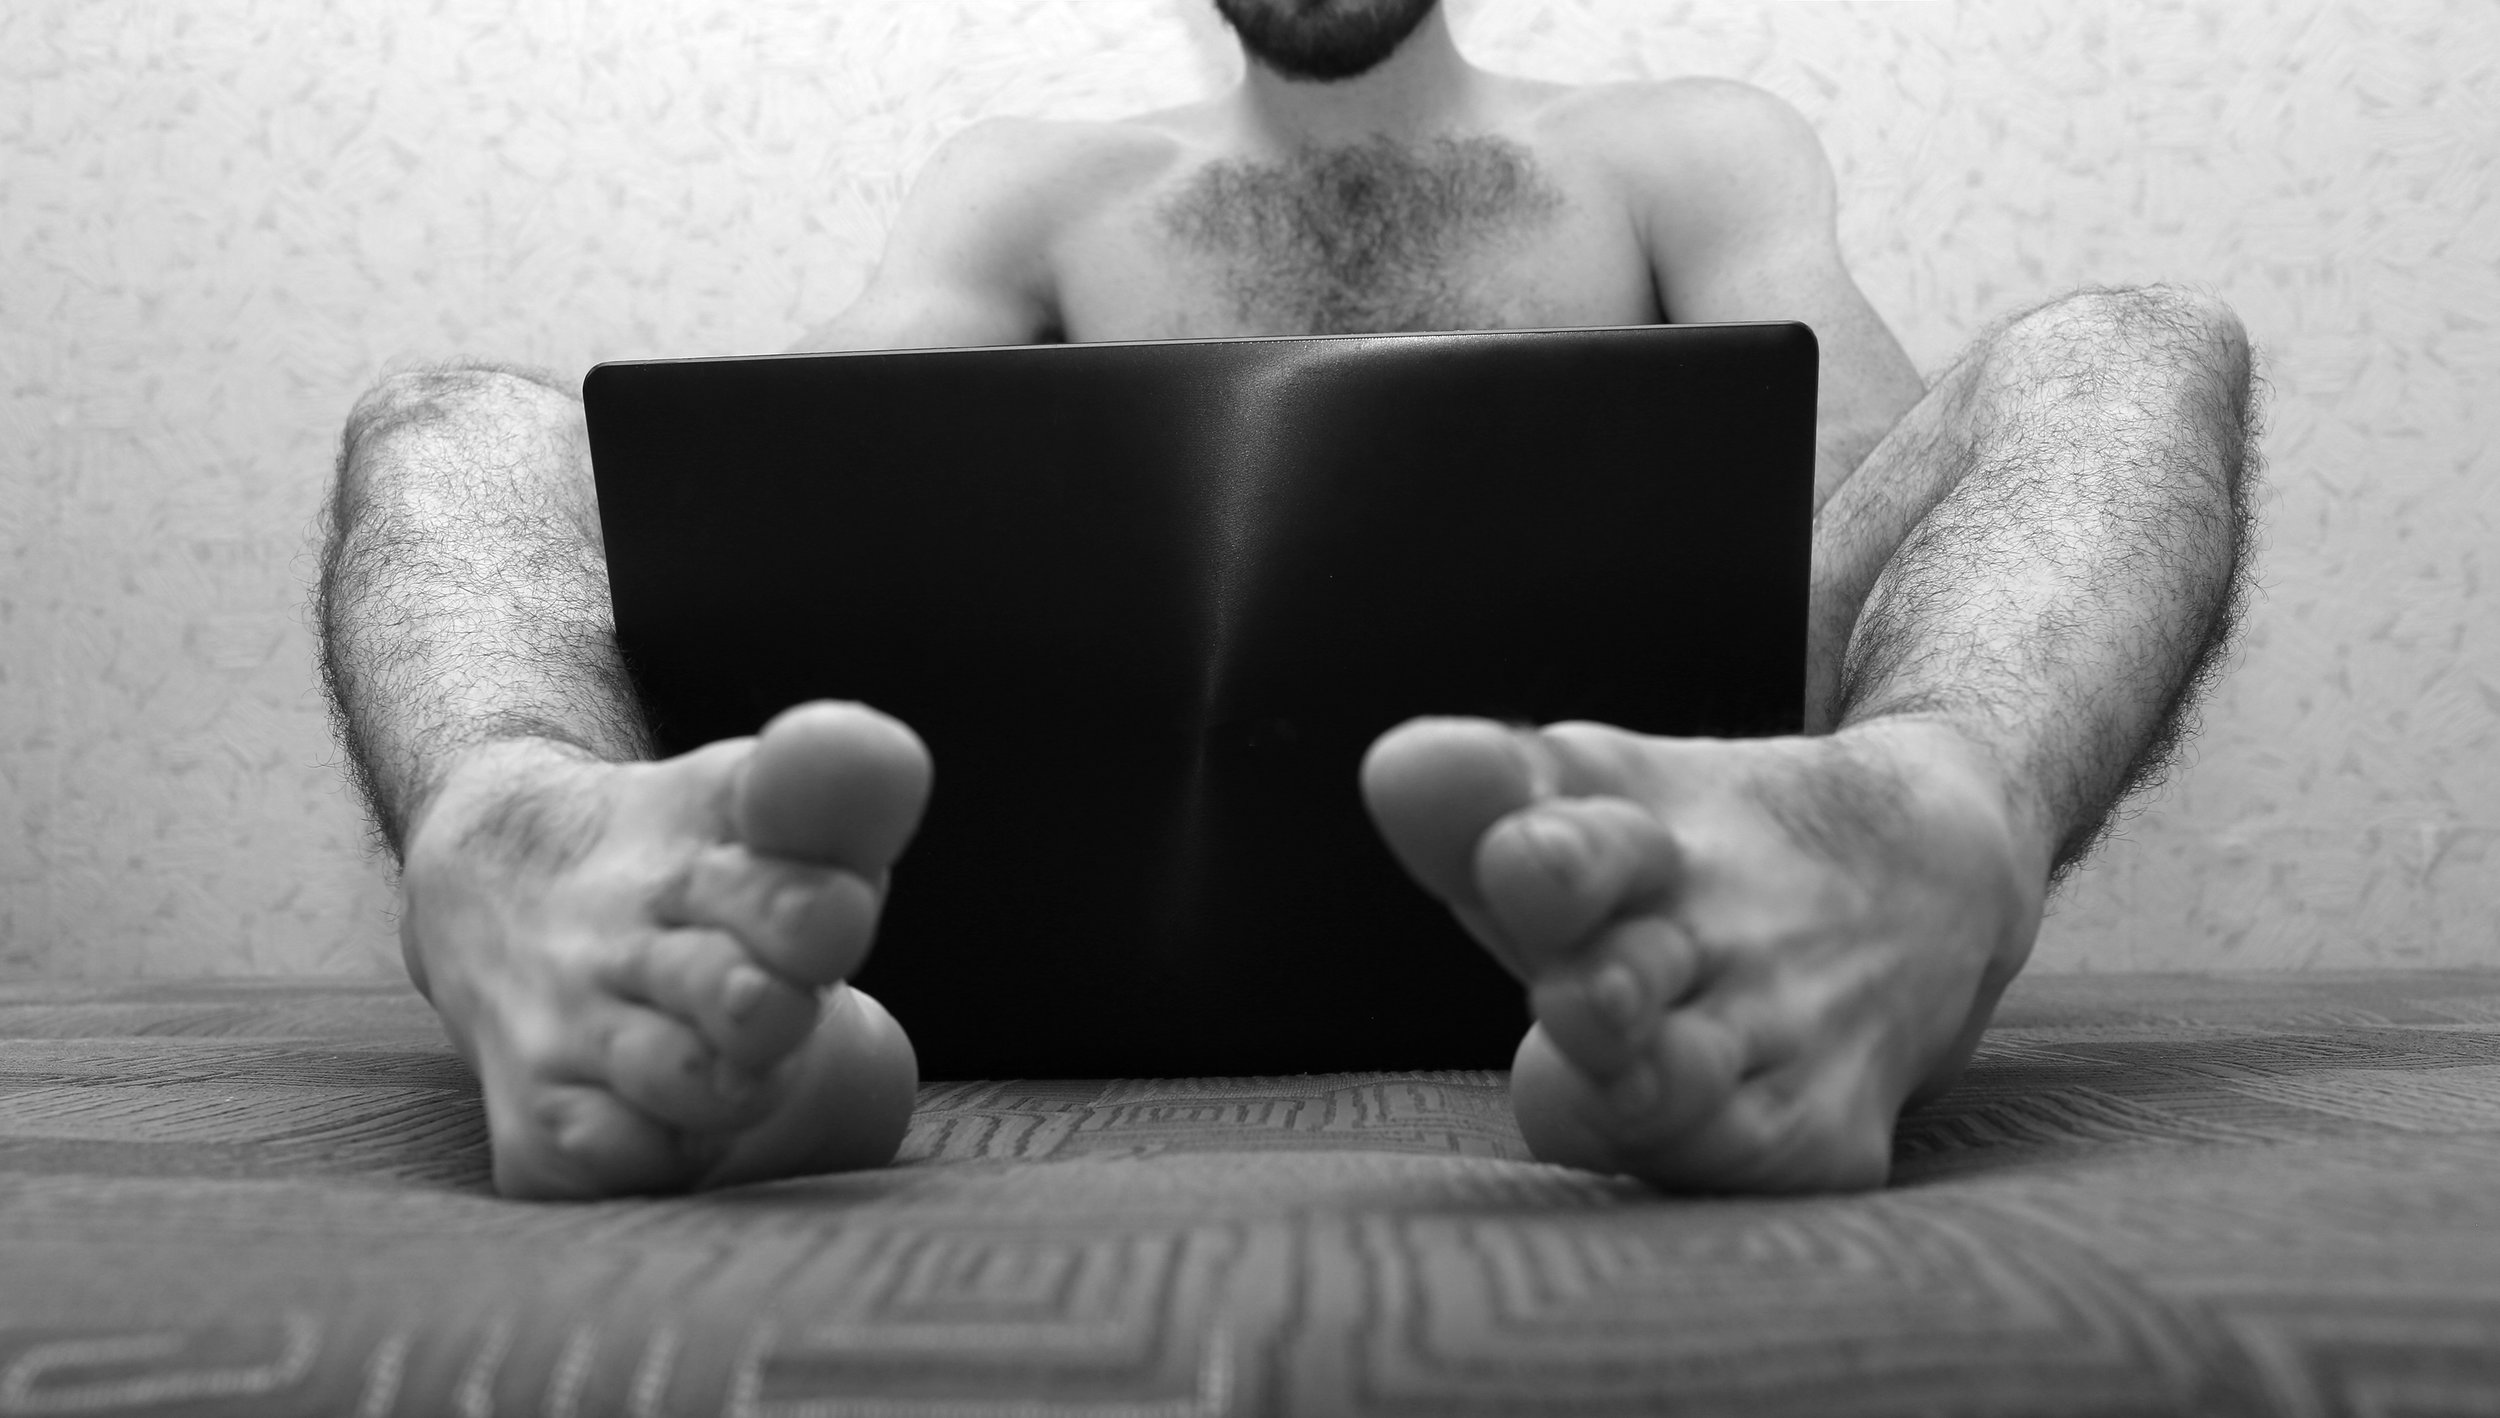 Porn isn't inherently unhealthy, but if its affecting your relationship to your partner or the world, it IS unhealthy.